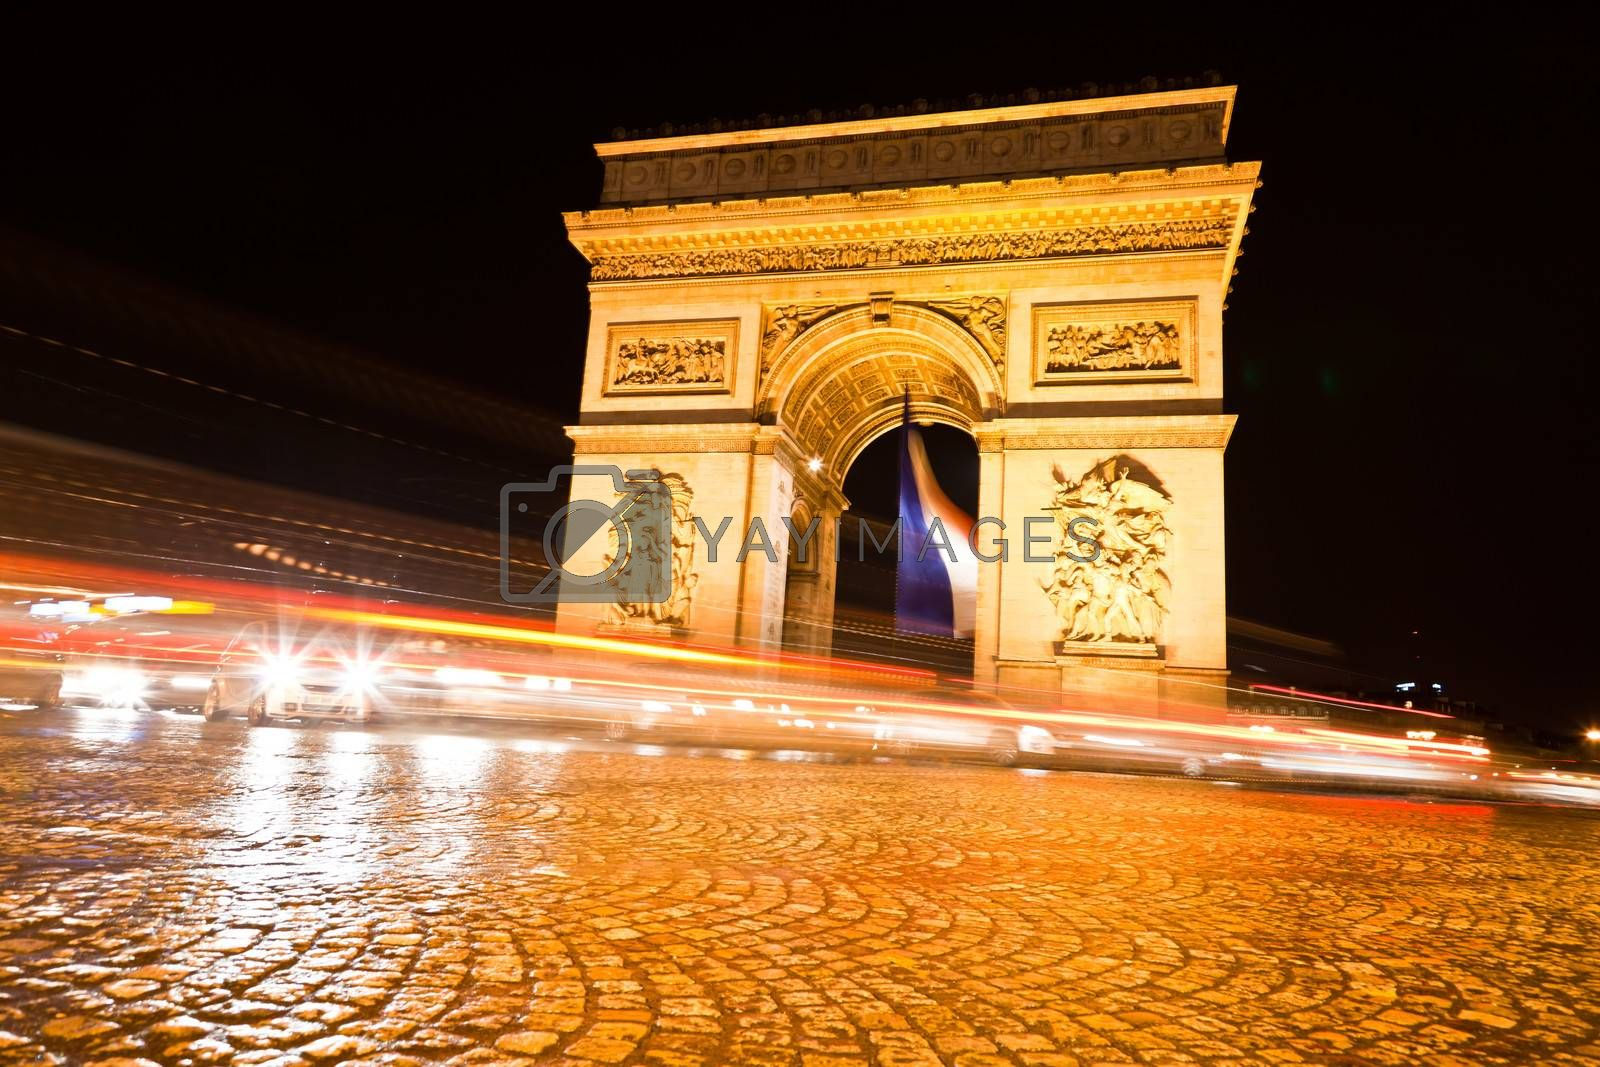 Royalty free image of The Arc de Triomphe in Paris by gary718